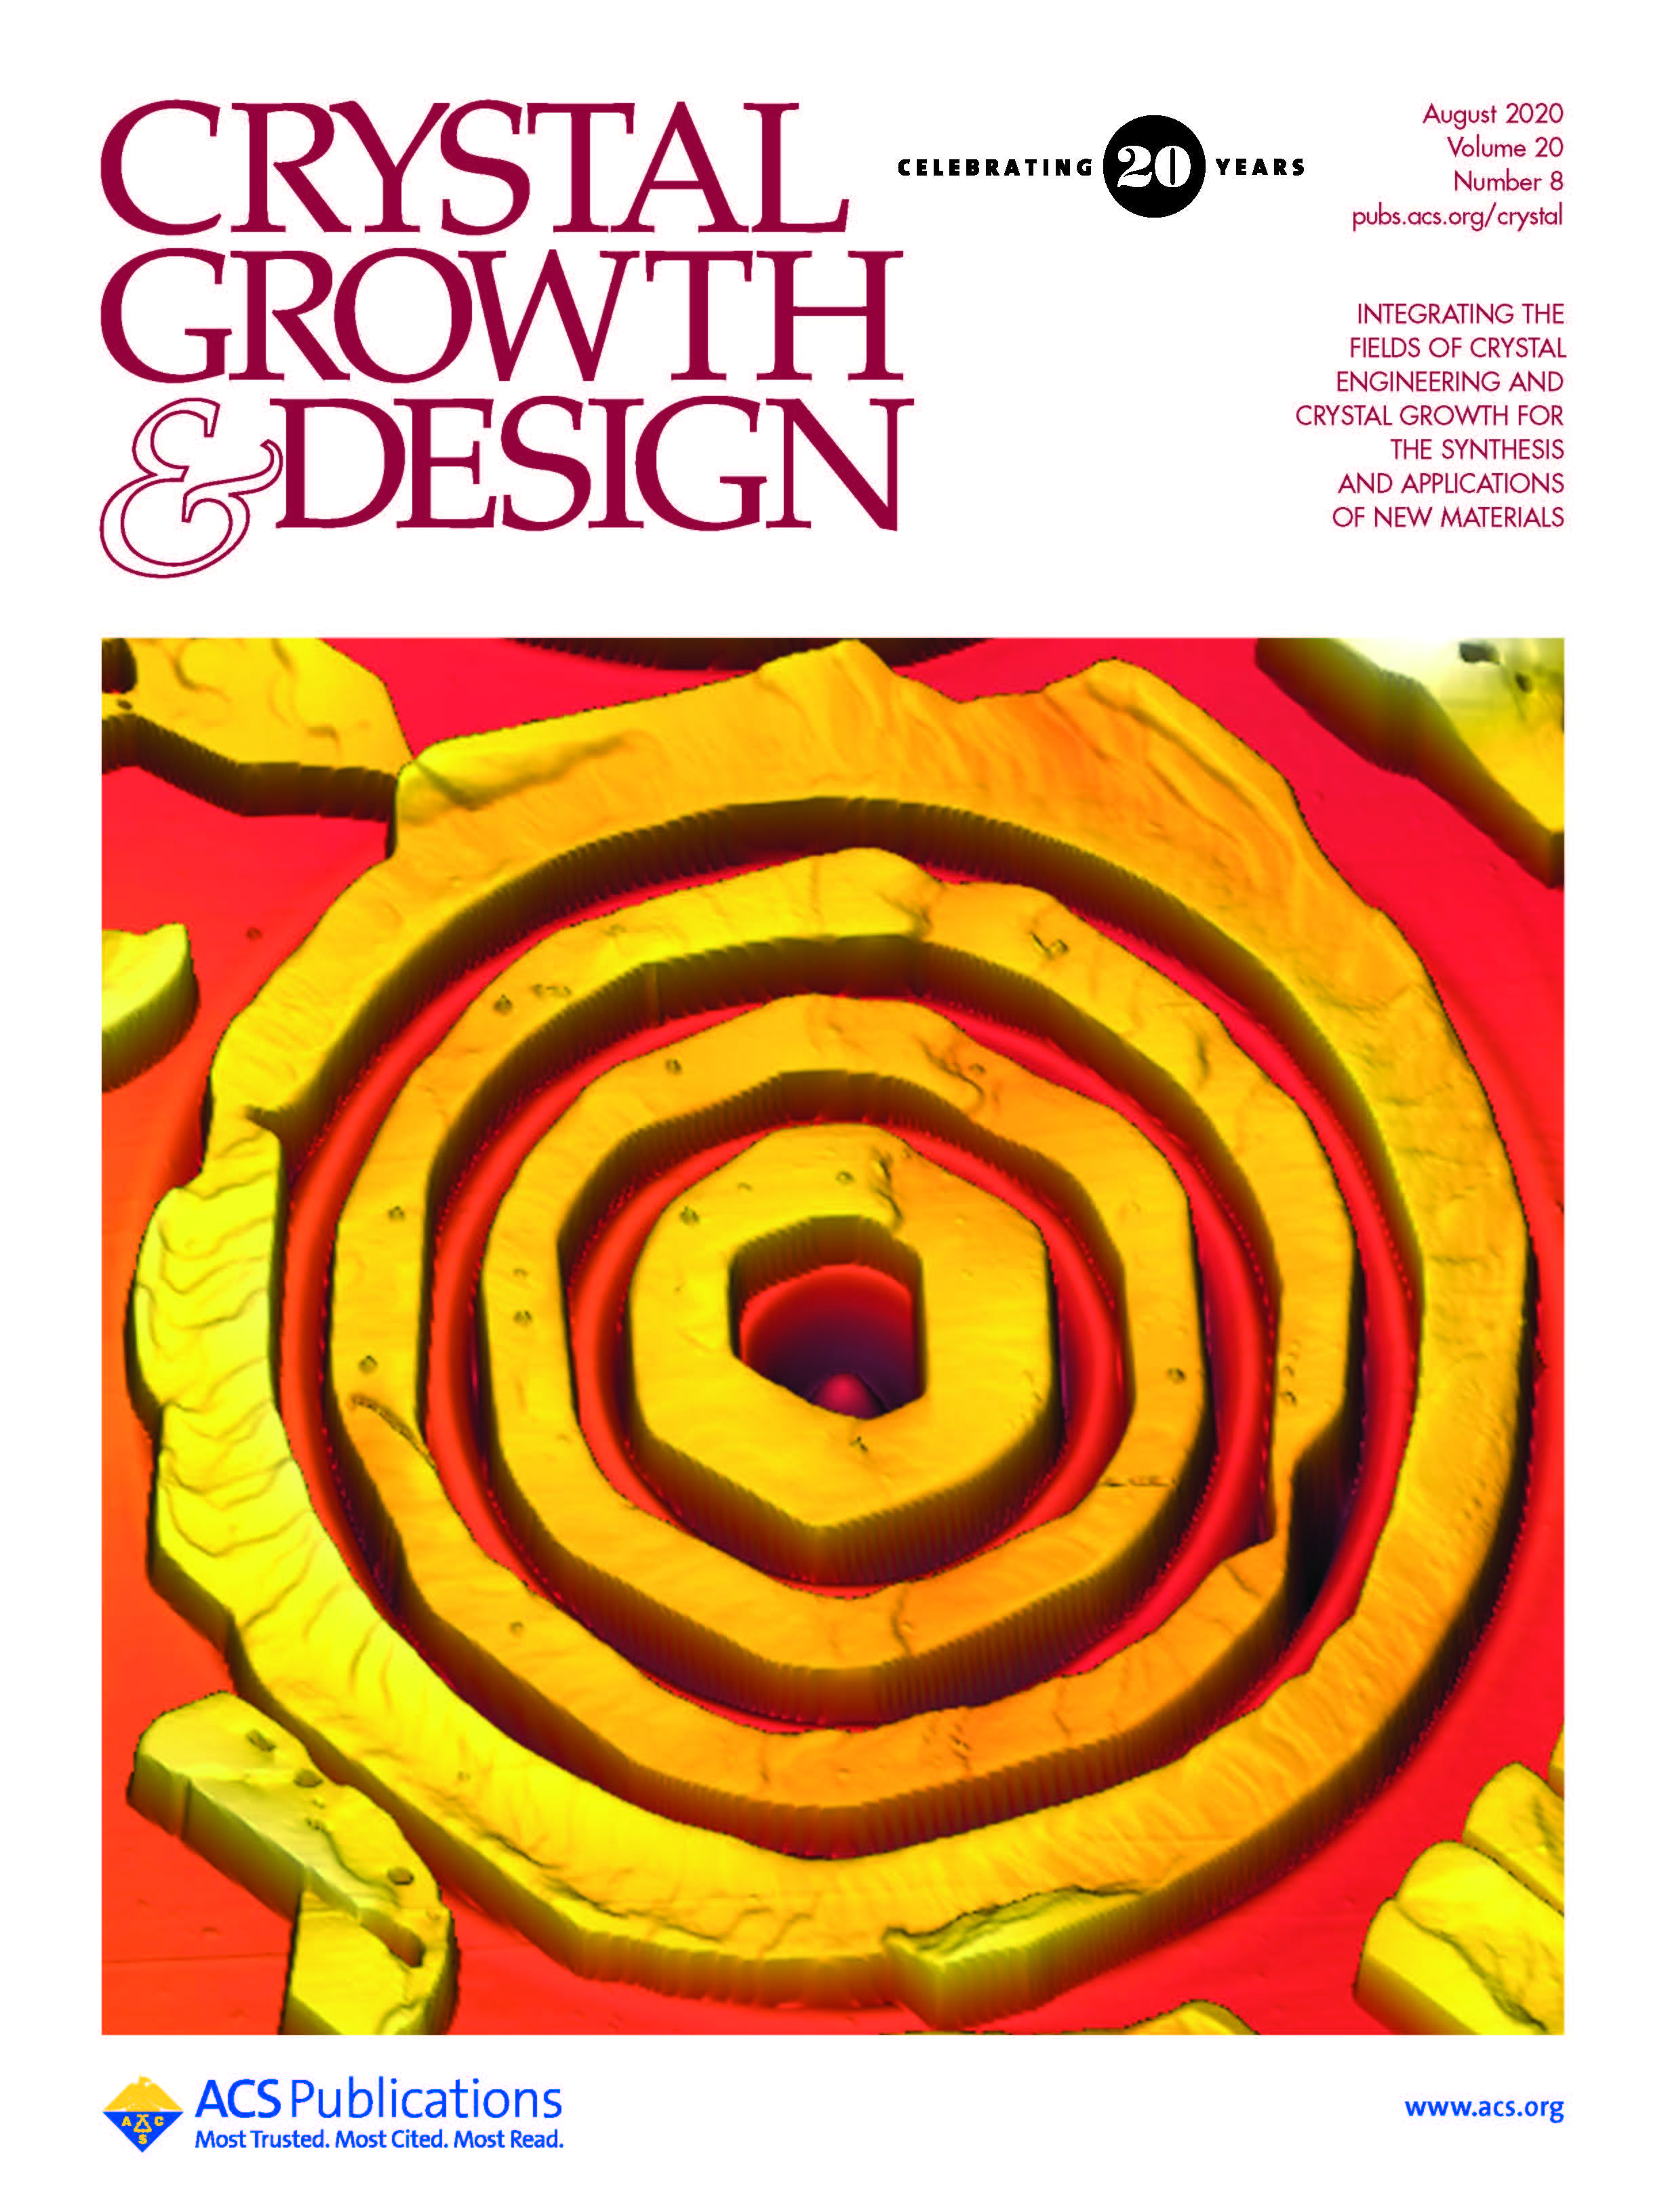 Crystal growth and design cover